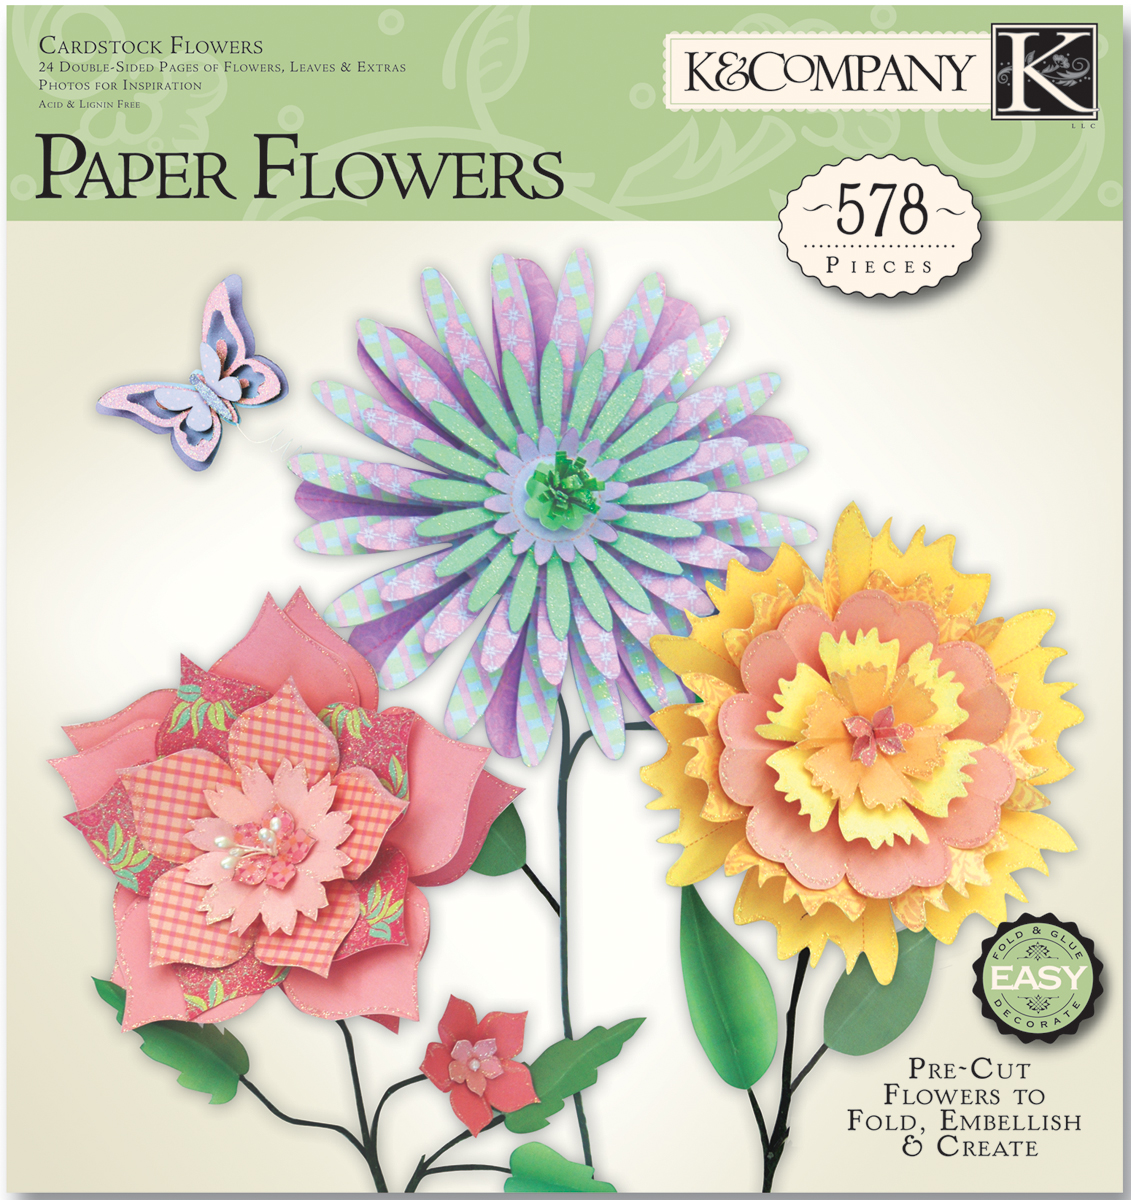 Cardstock Flowers Paper Crafting Pad 578 Pieces Diy Craft Kits